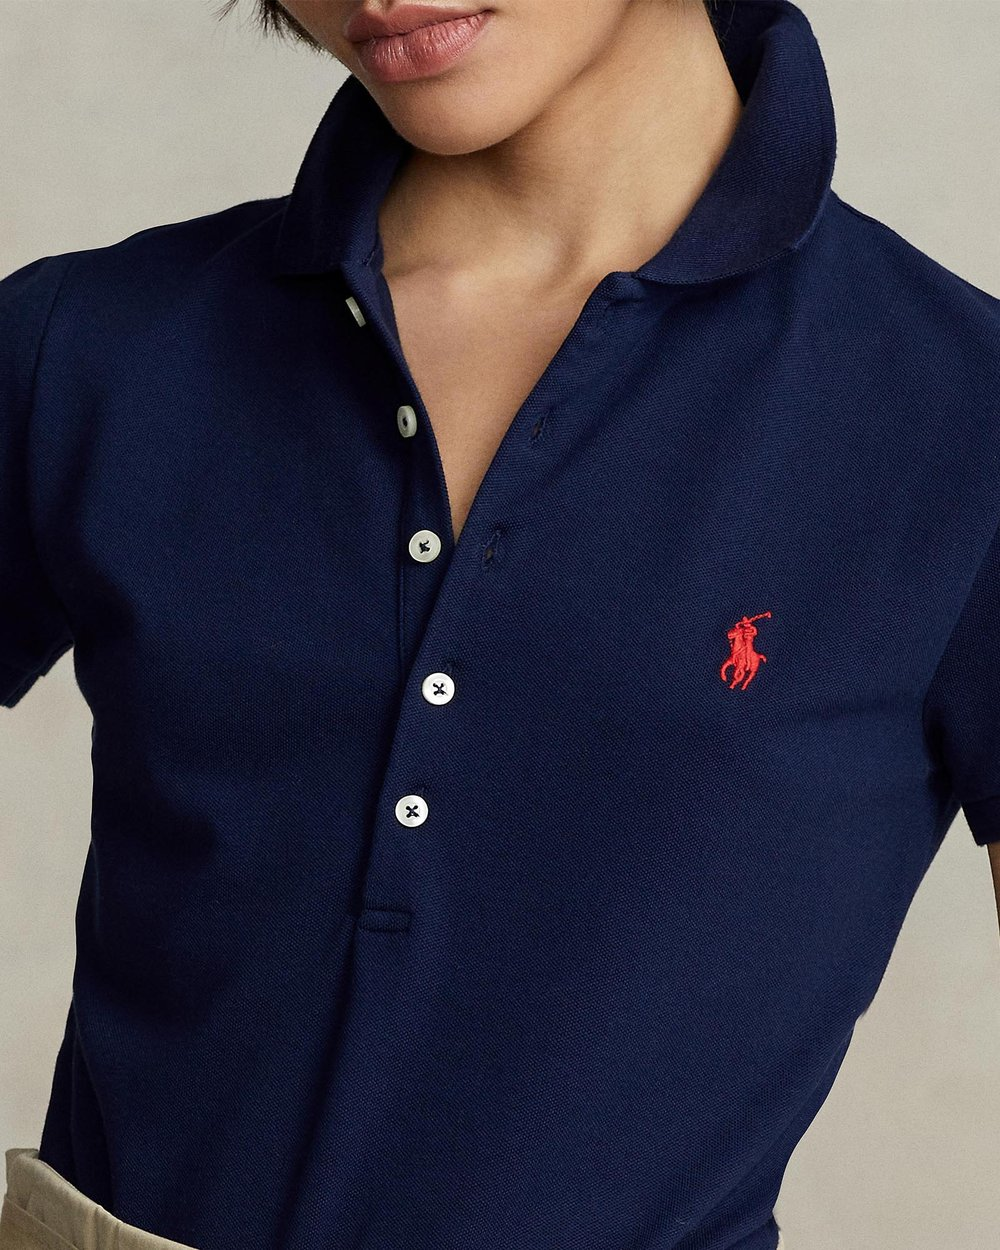 Skinny Fit Stretch Mesh Polo by Polo Ralph Lauren Online   THE ICONIC    Australia a9096da4f7eb